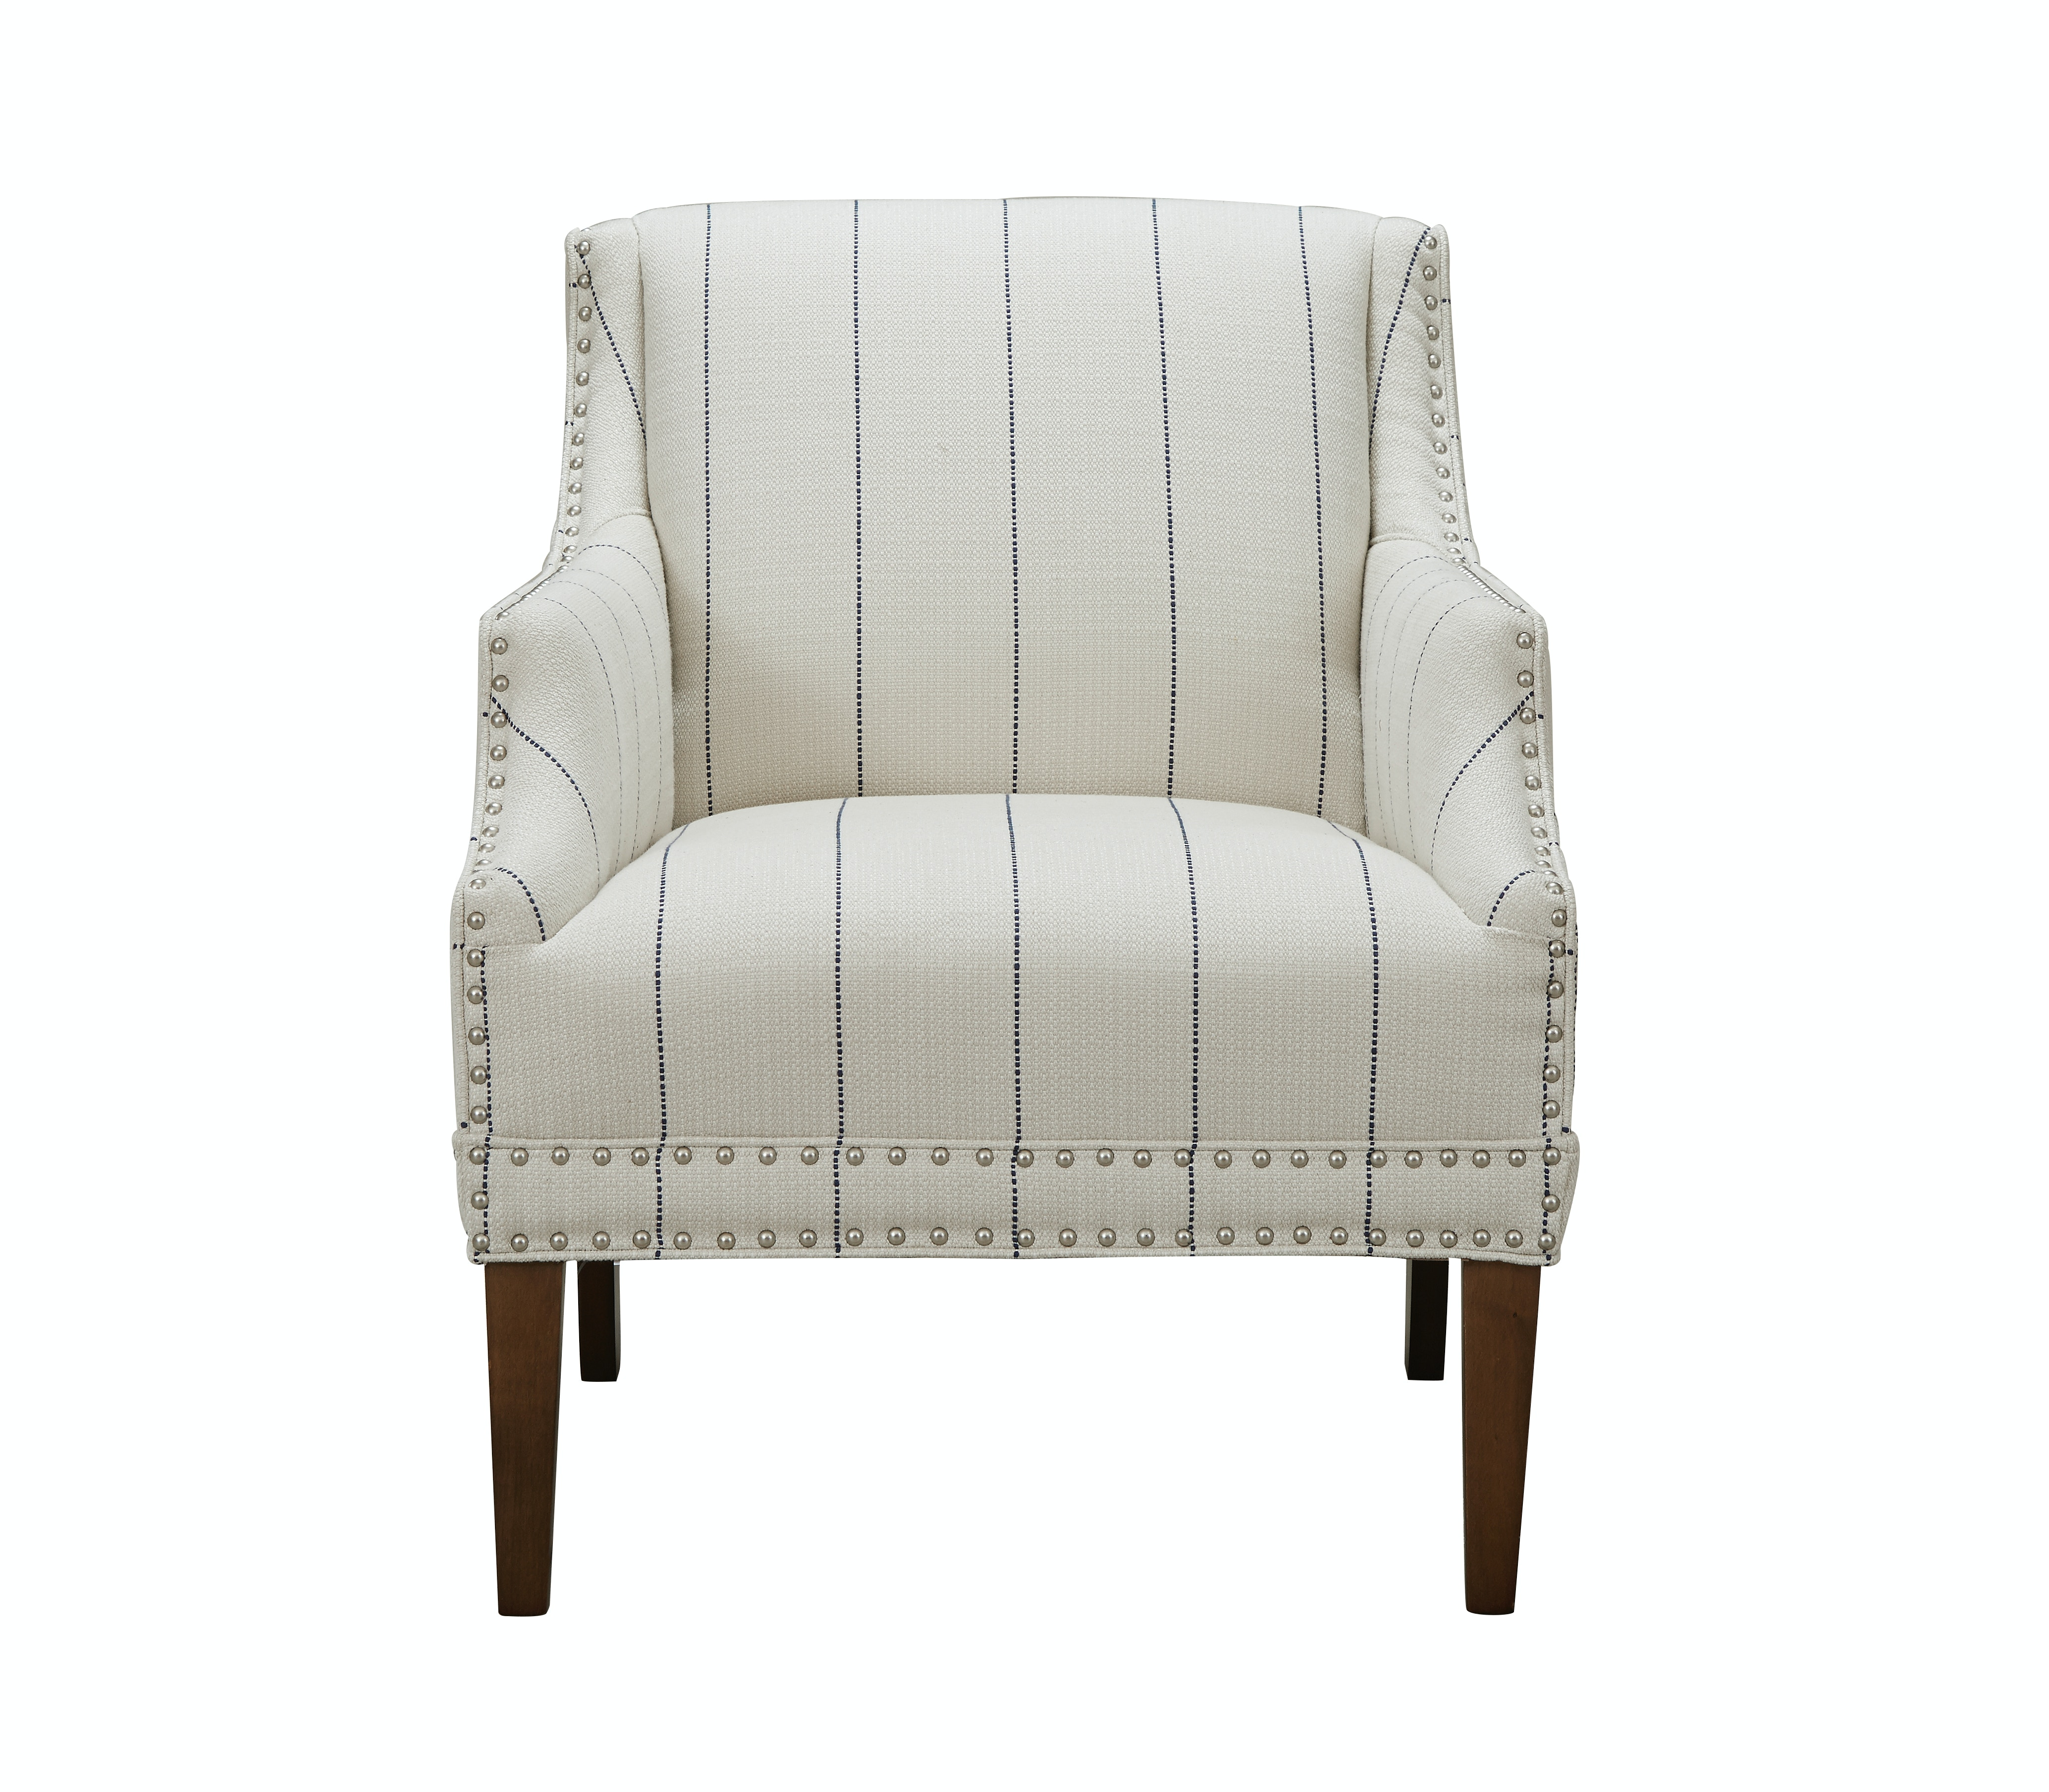 Southern Furniture Stella Chair 24553